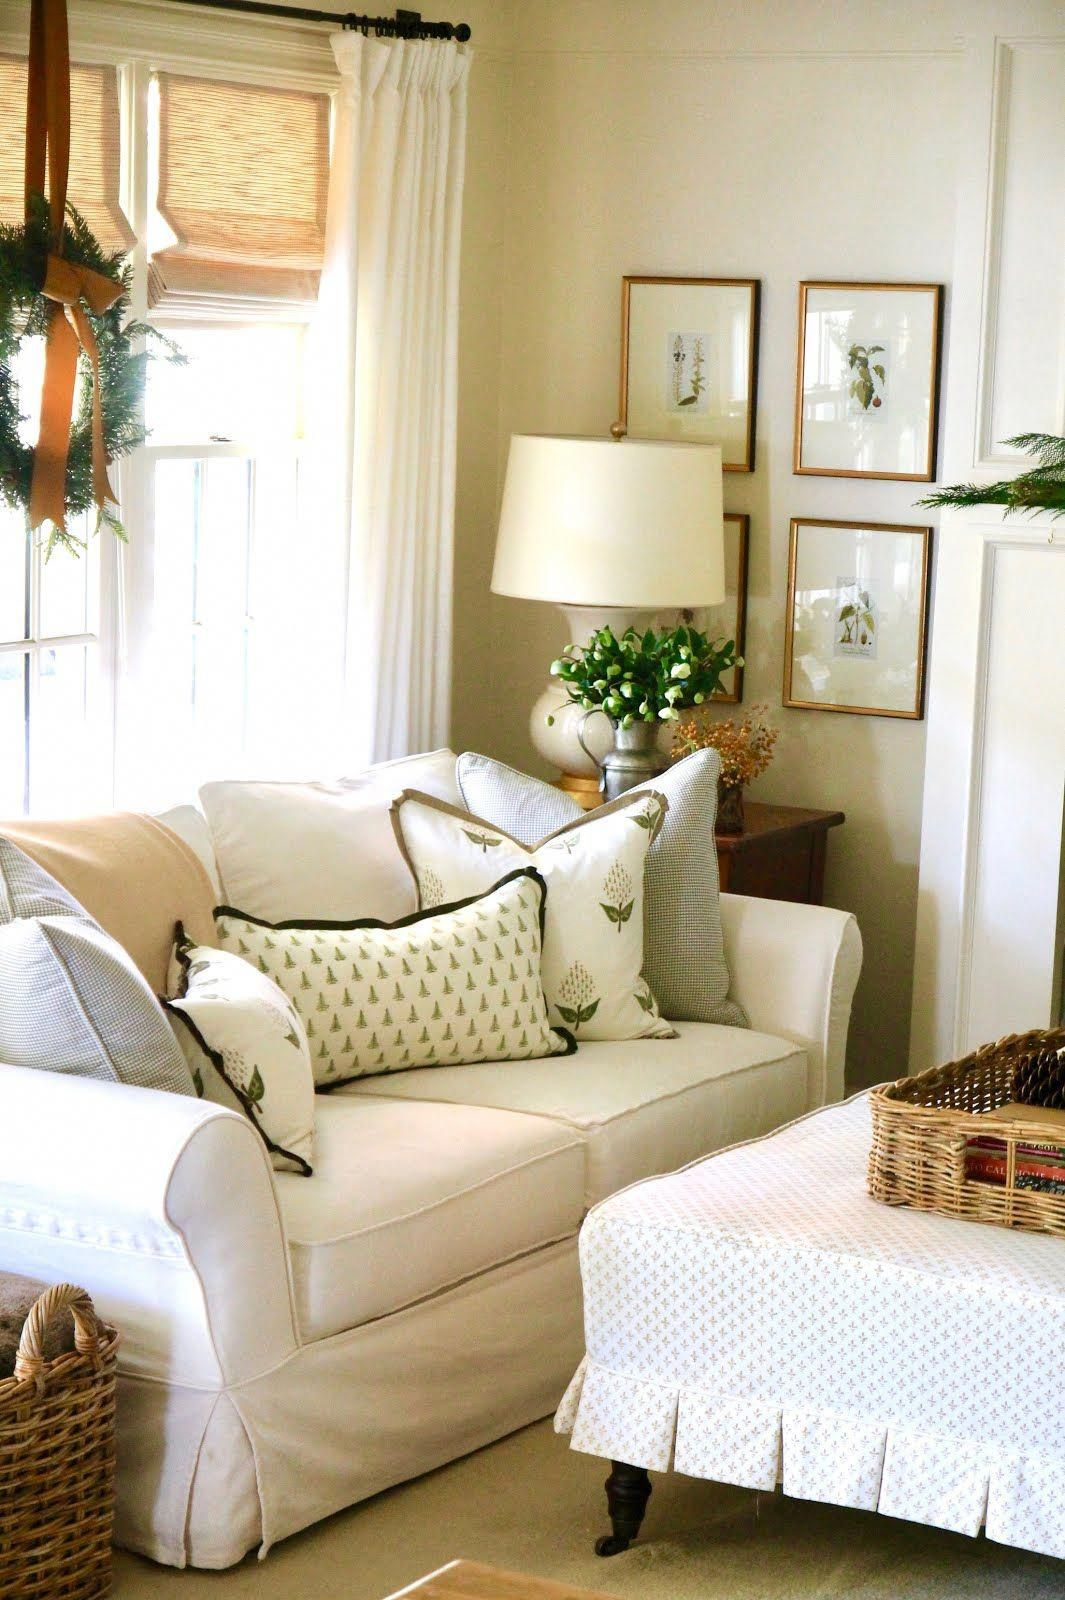 Design Ideas For Family Room With Fireplace Family Room Design Ideas With Fireplace And Tv Smallroomdesign